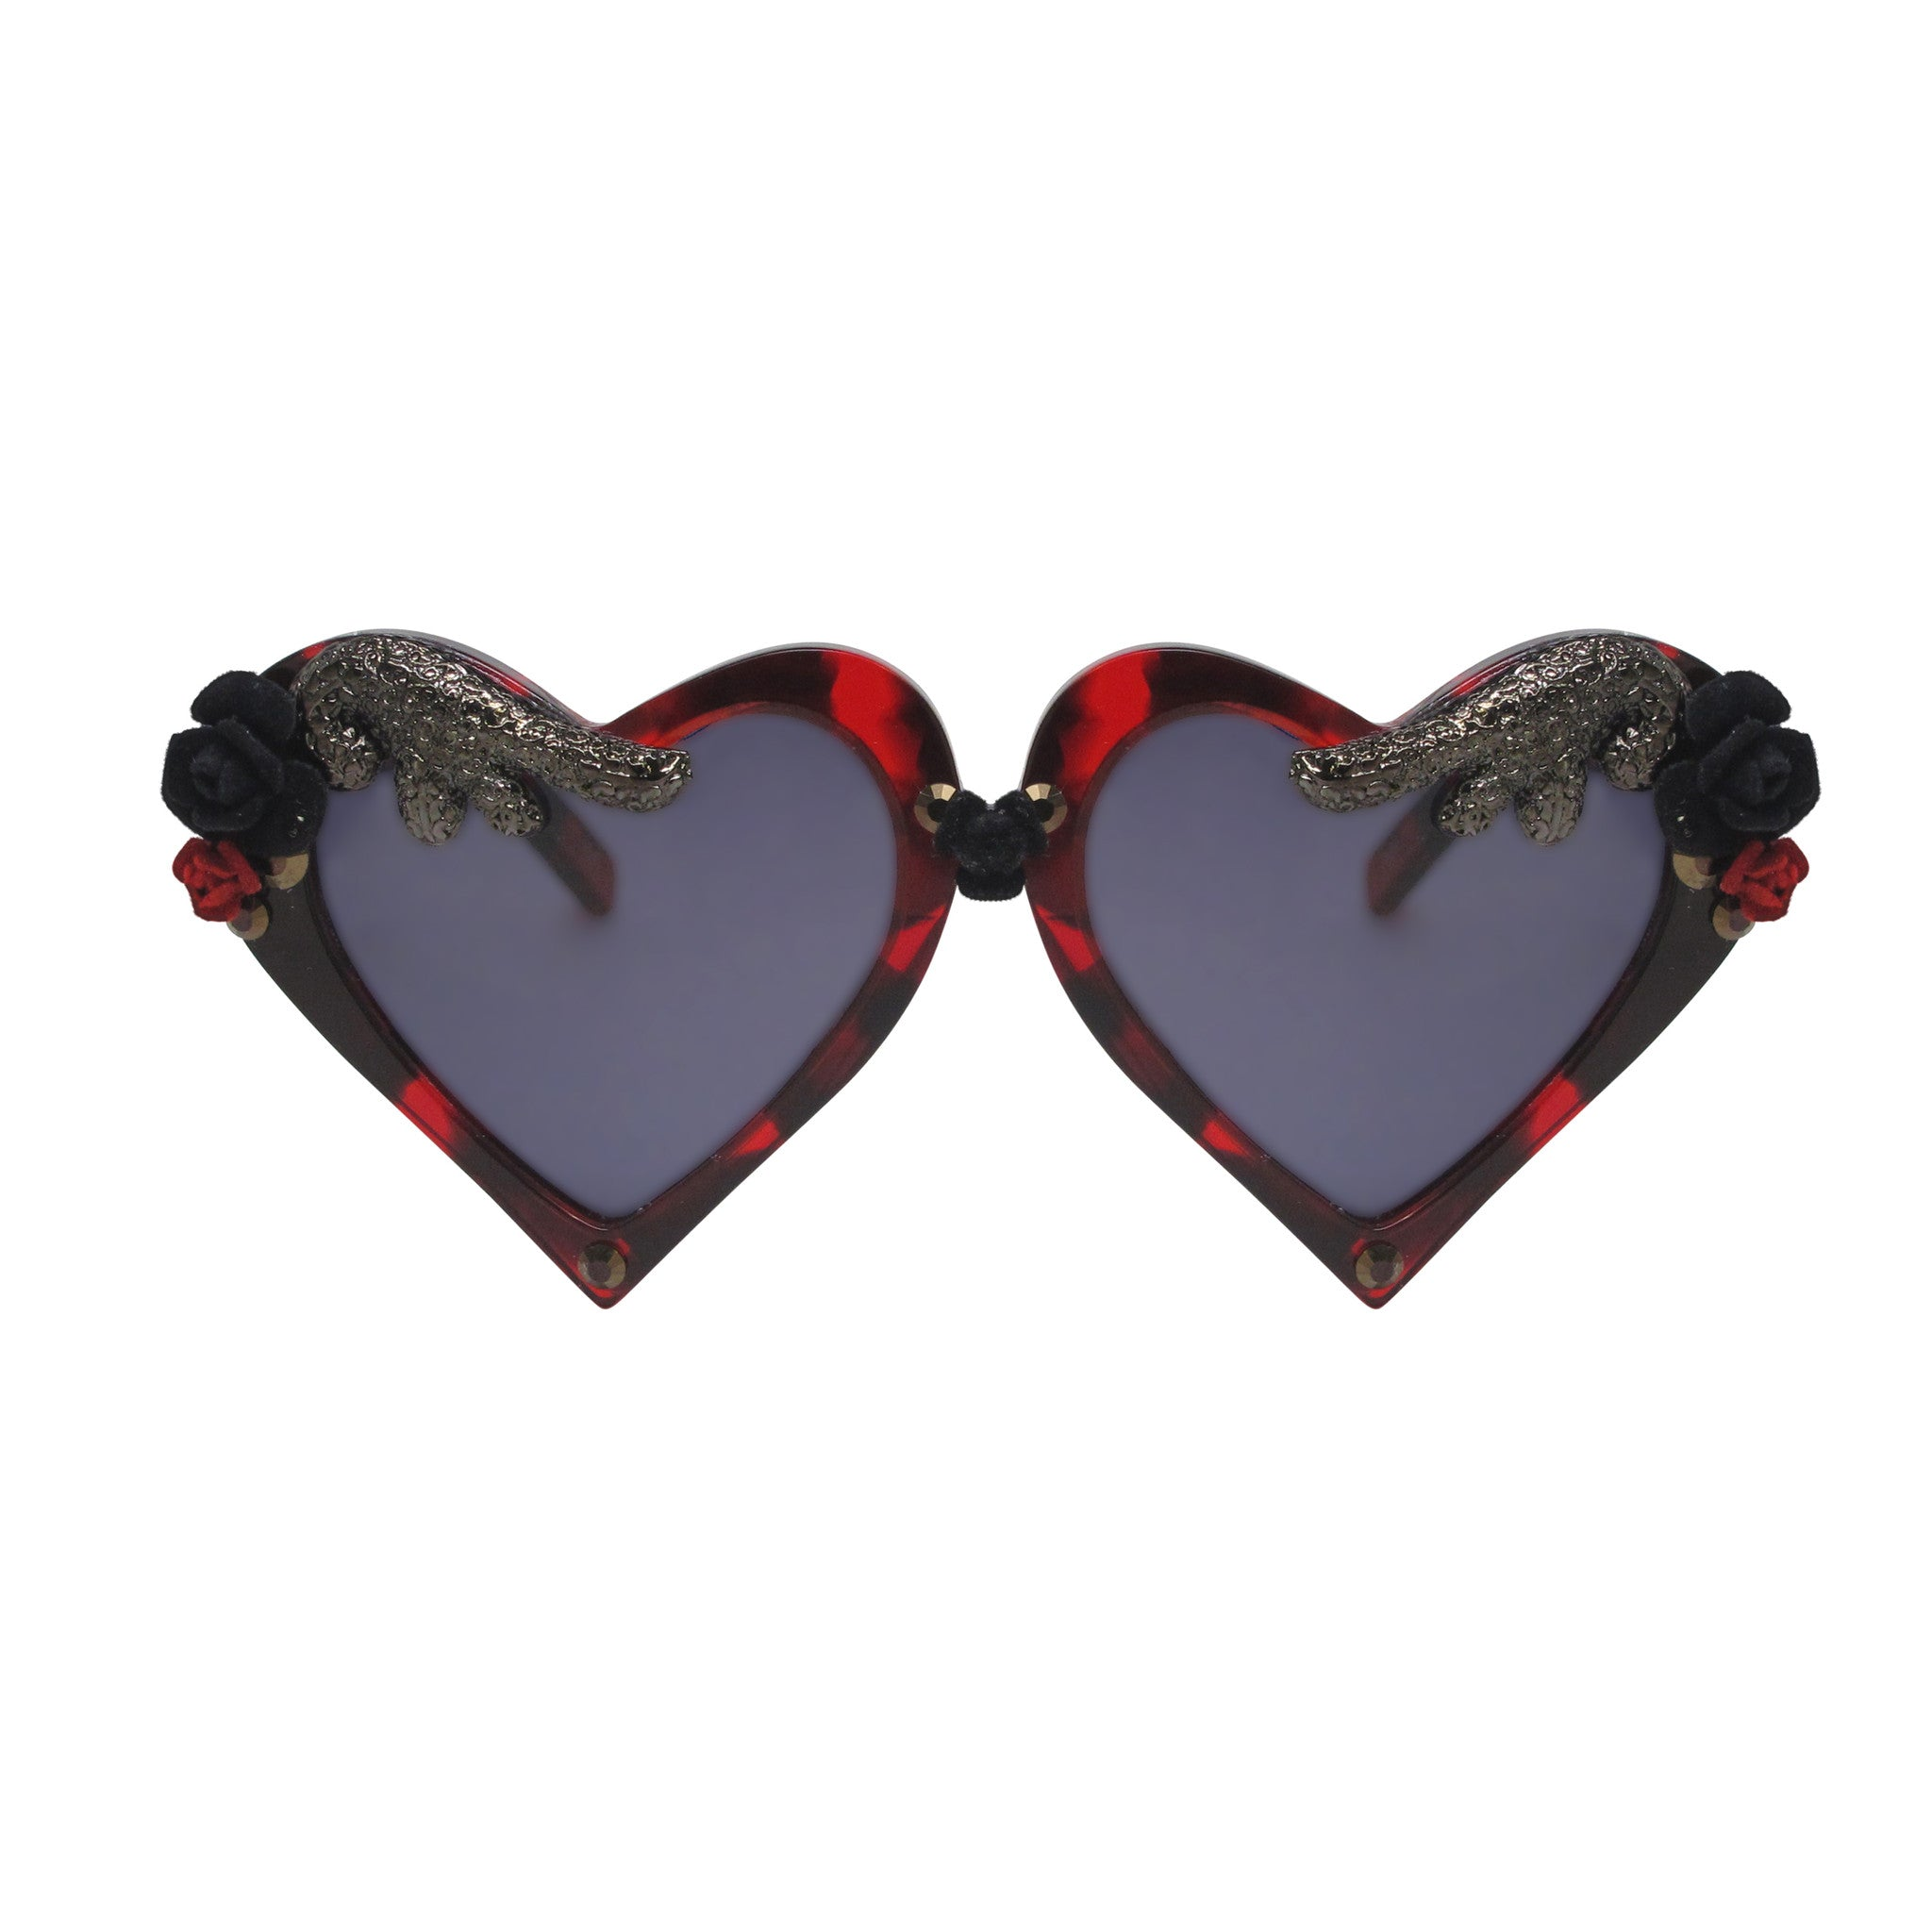 Agnew wing embellished heart shaped frames